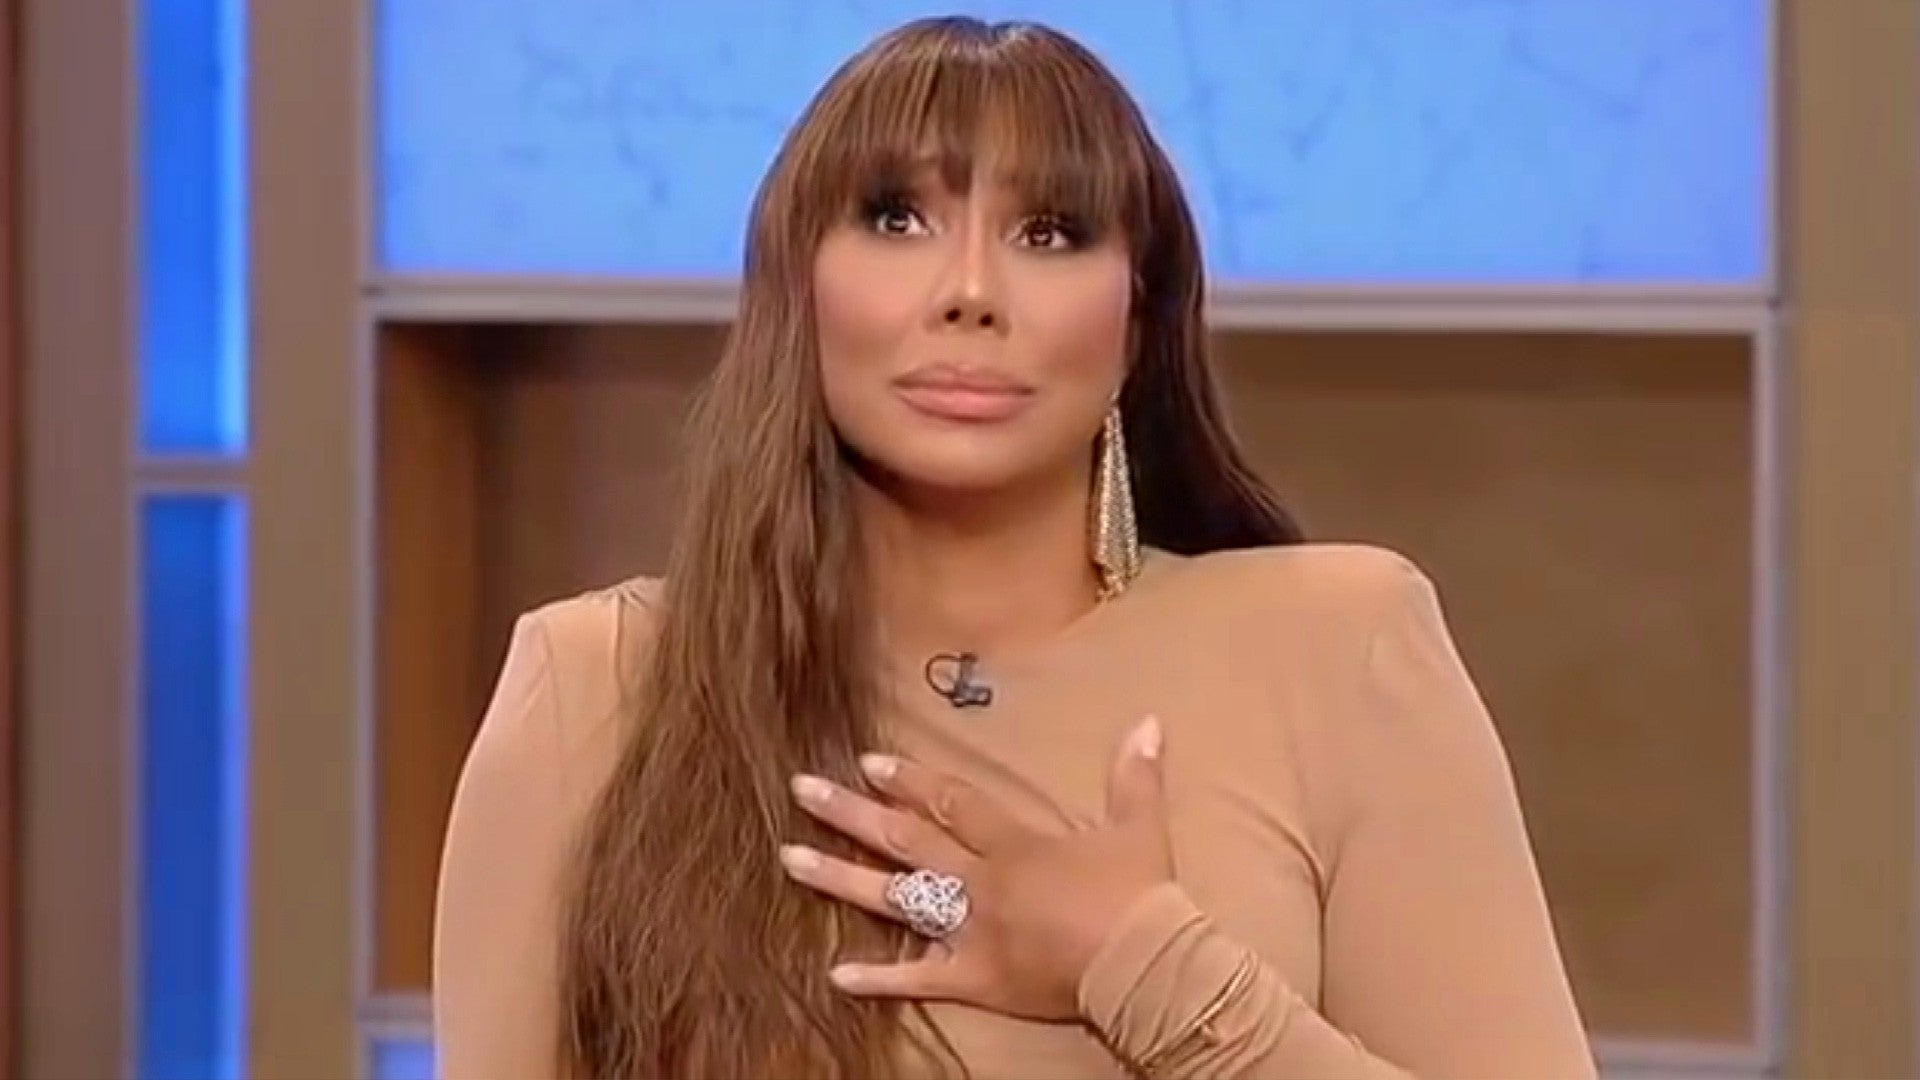 Tamar Braxton Talks About Her Suicide Attempt; She Says She Felt Logan Would Have Been Better Off Without Her